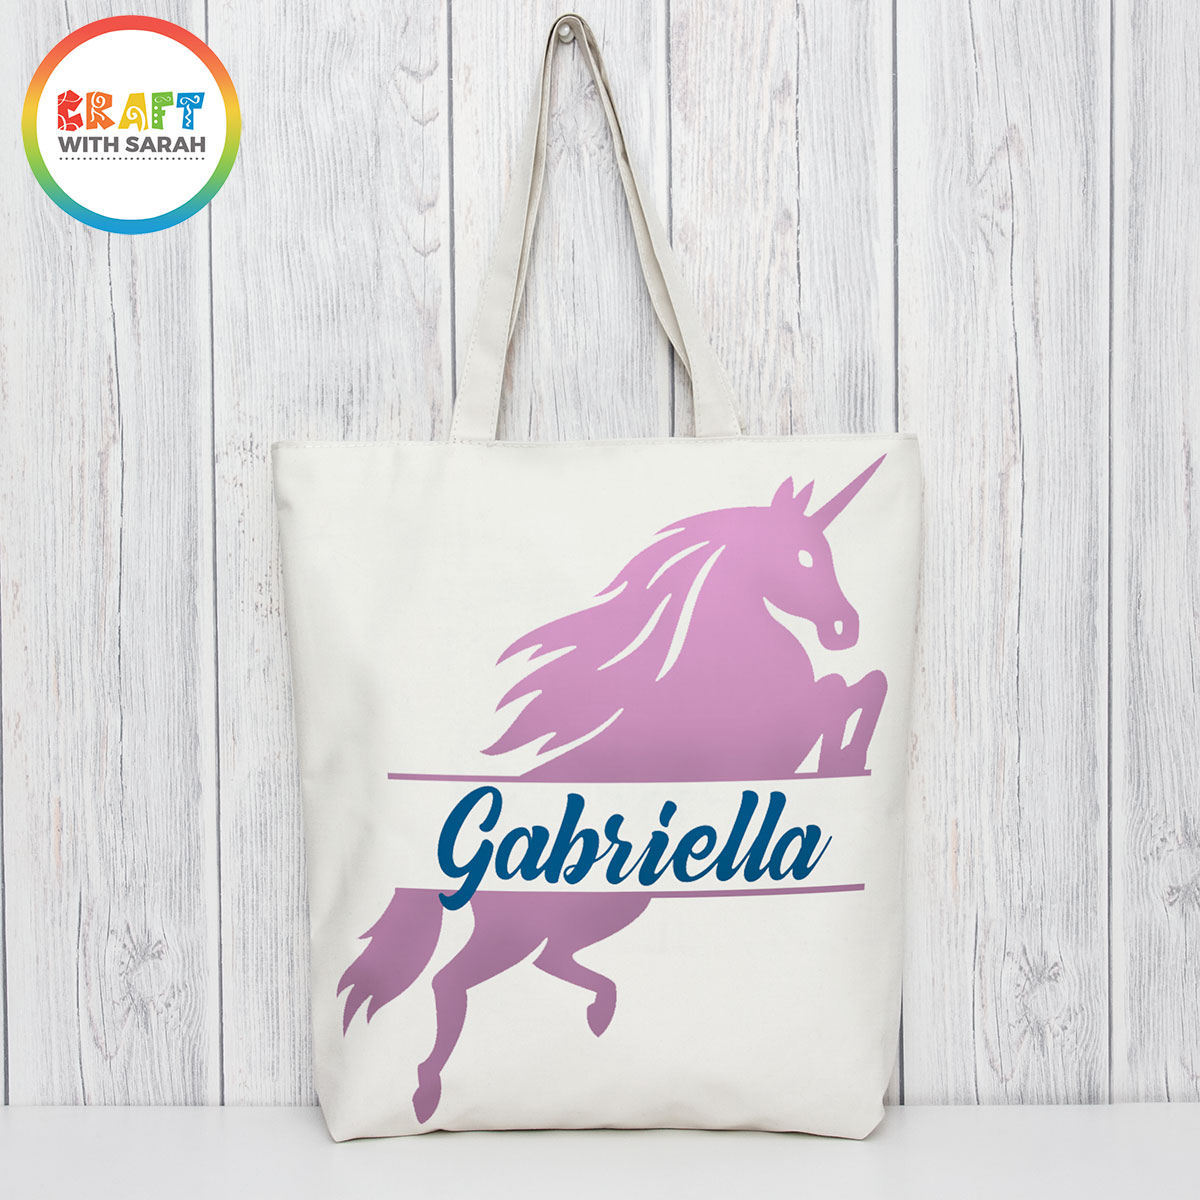 Unicorn tote bag design